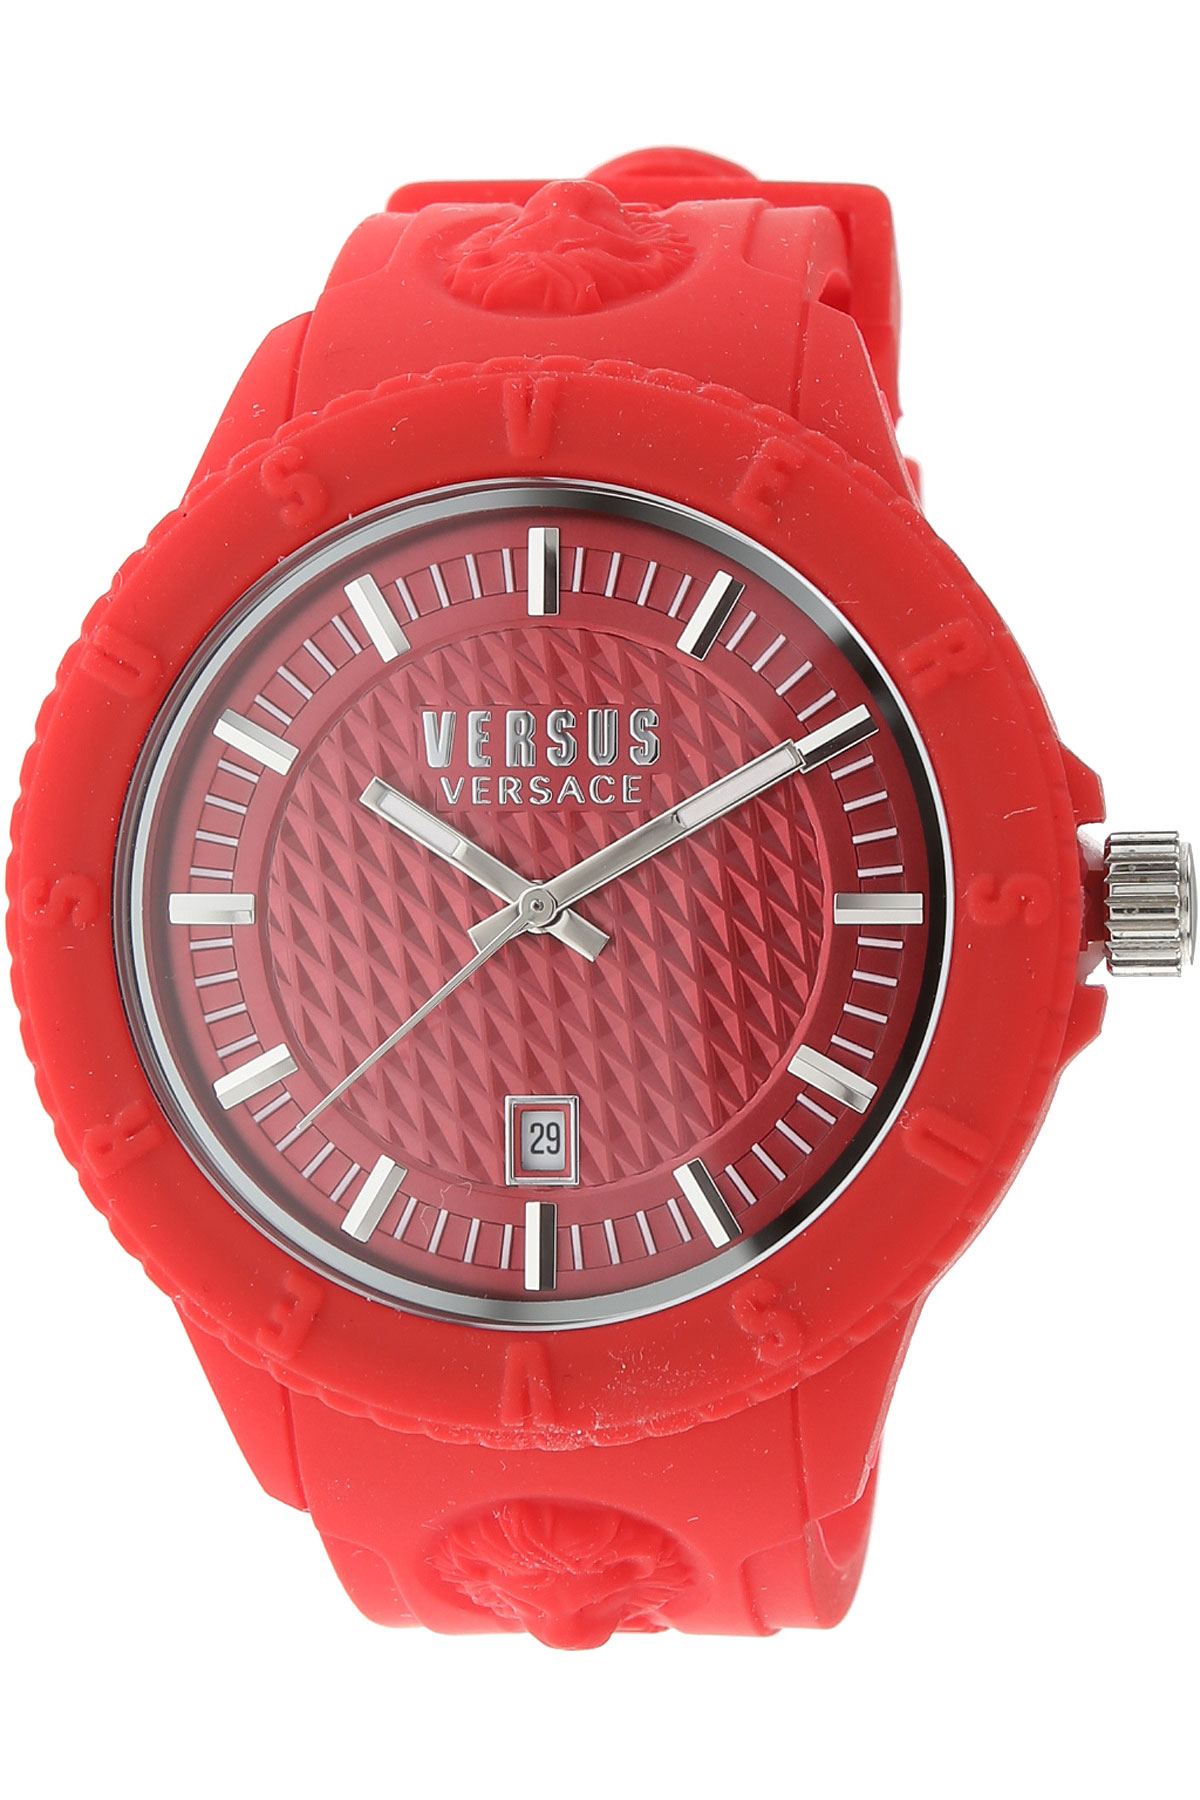 Versace_Watch_for_Women_On_Sale,_Red,_Rubber,_2019